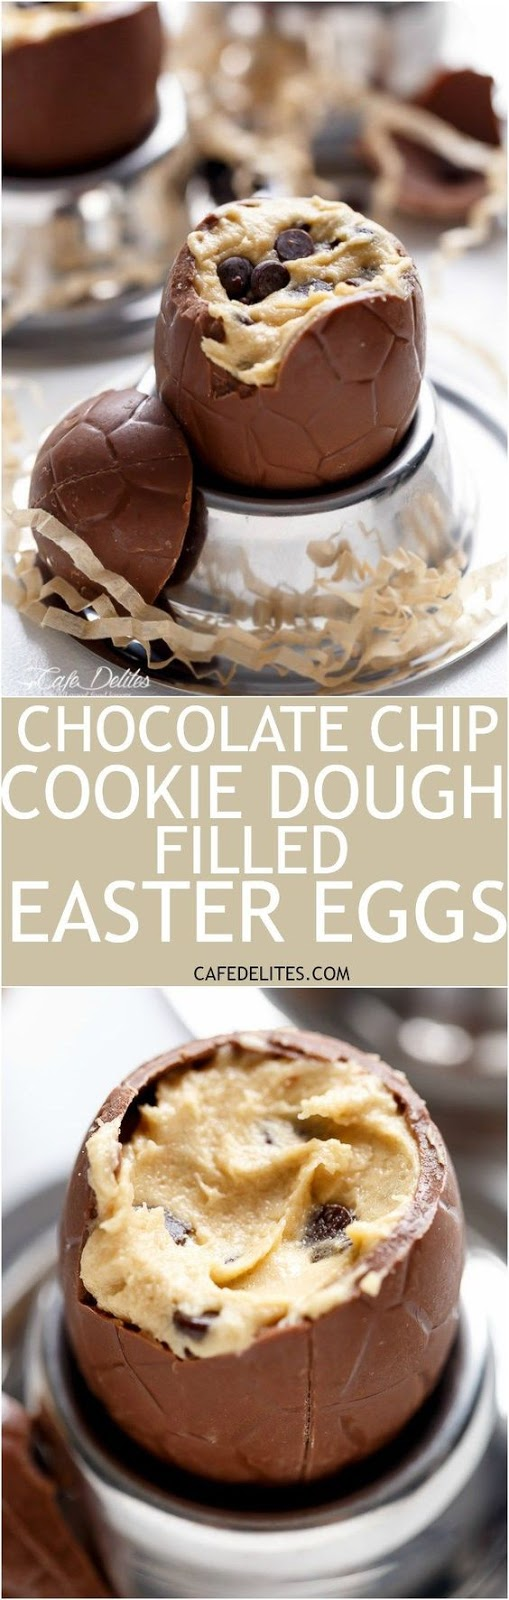 Cookie Dough Filled Easter Eggs